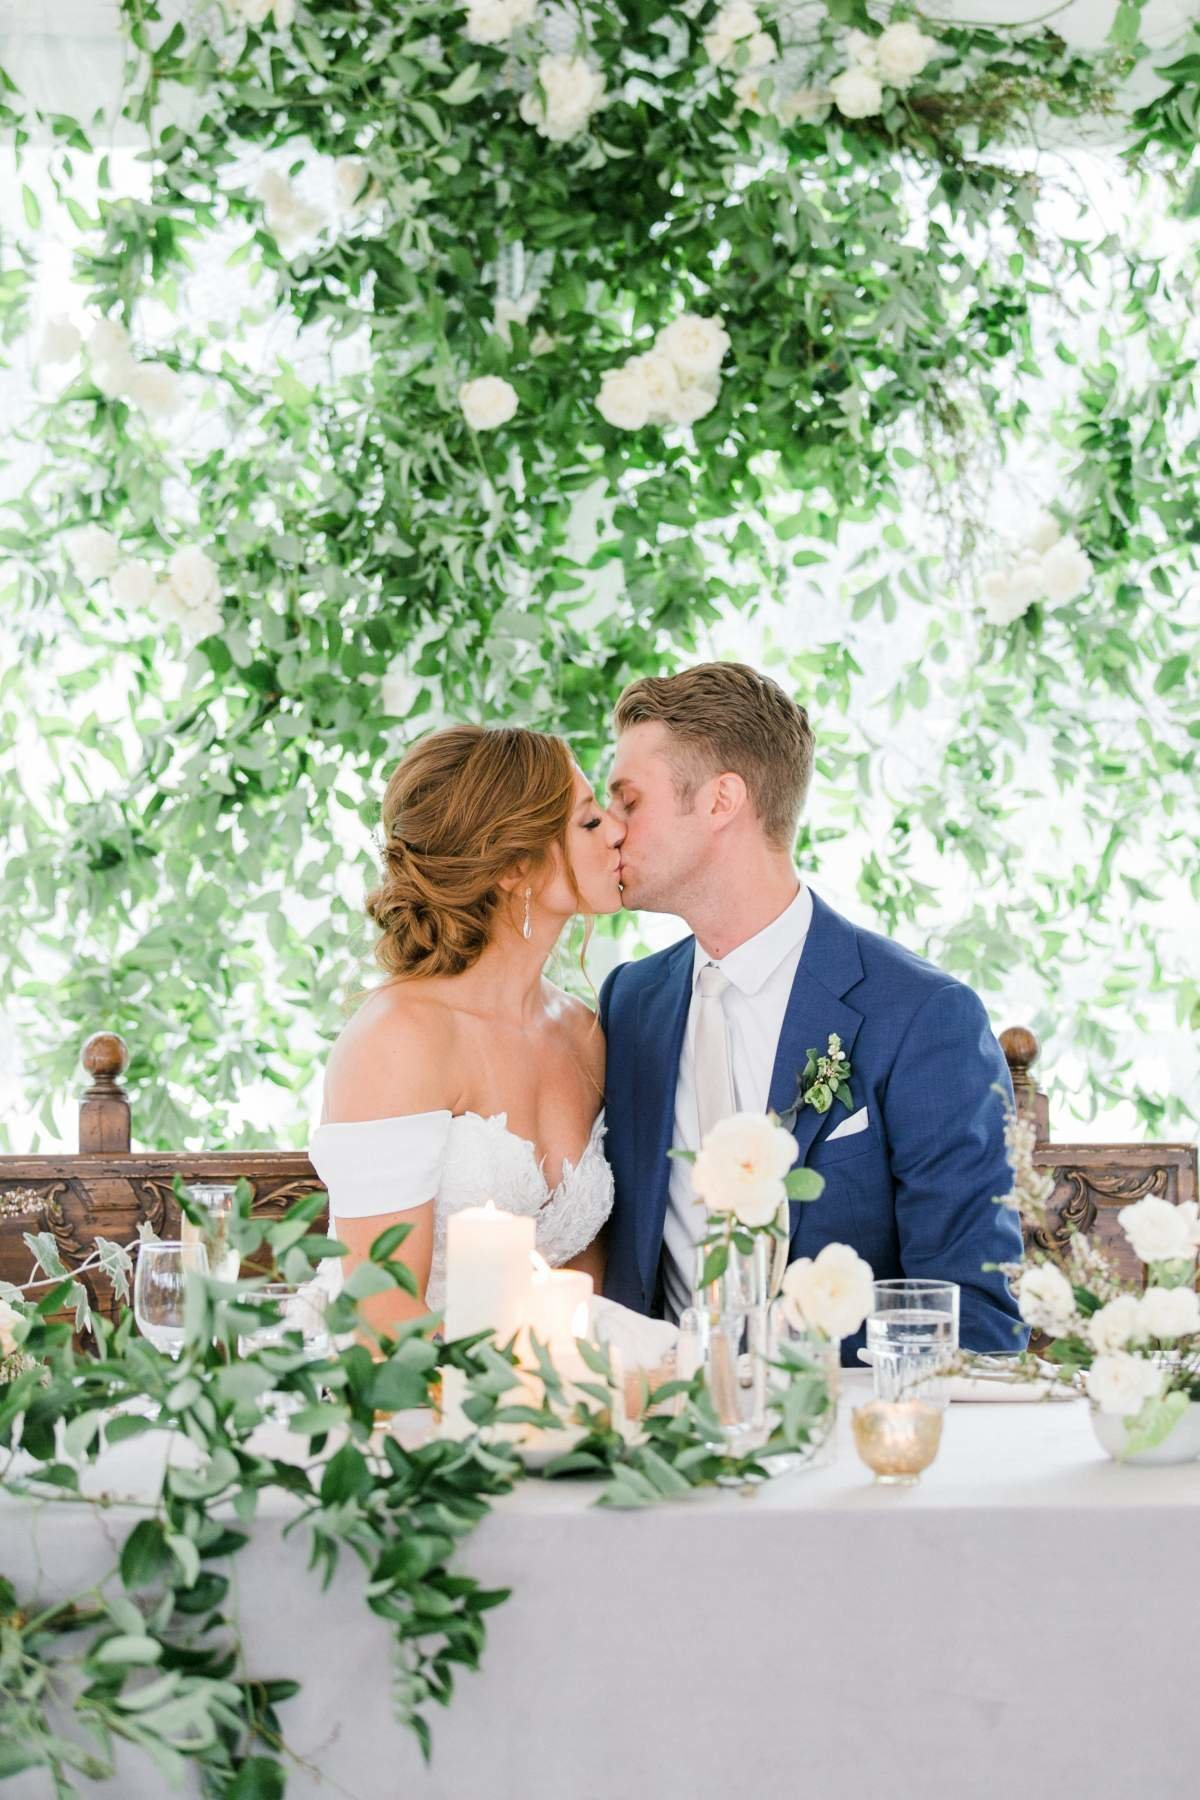 michigan-wedding-with-greenery-sweetheart-table